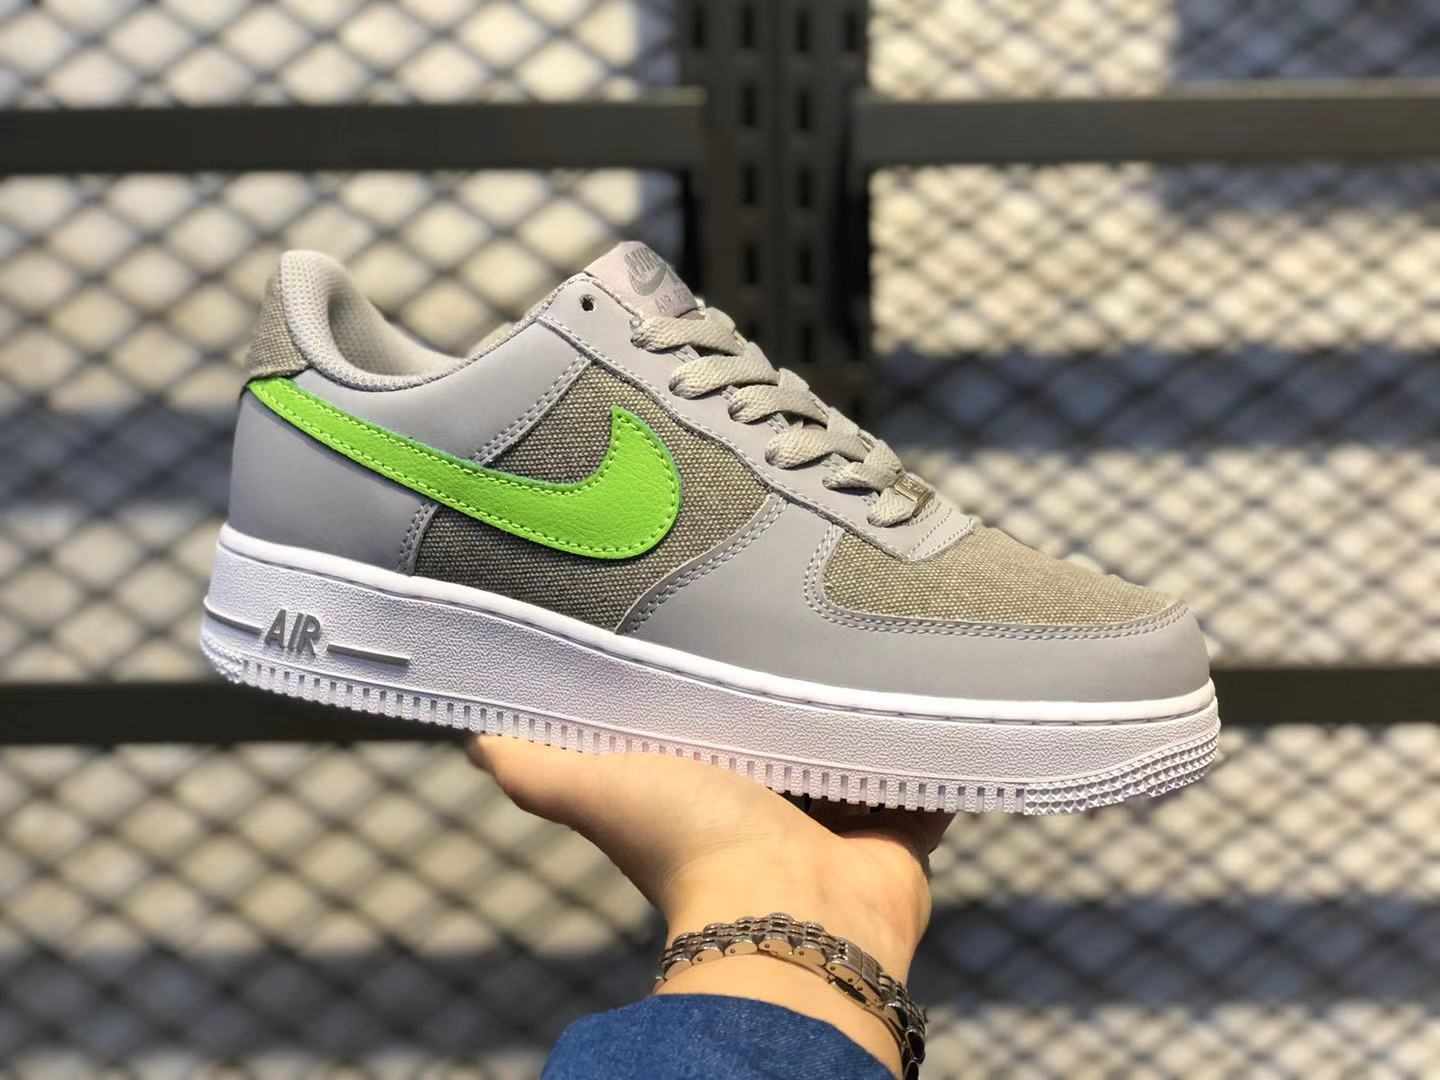 Nike Air Force 1 Low Wolf Grey/Action Green-White 488298-009 Super Deals